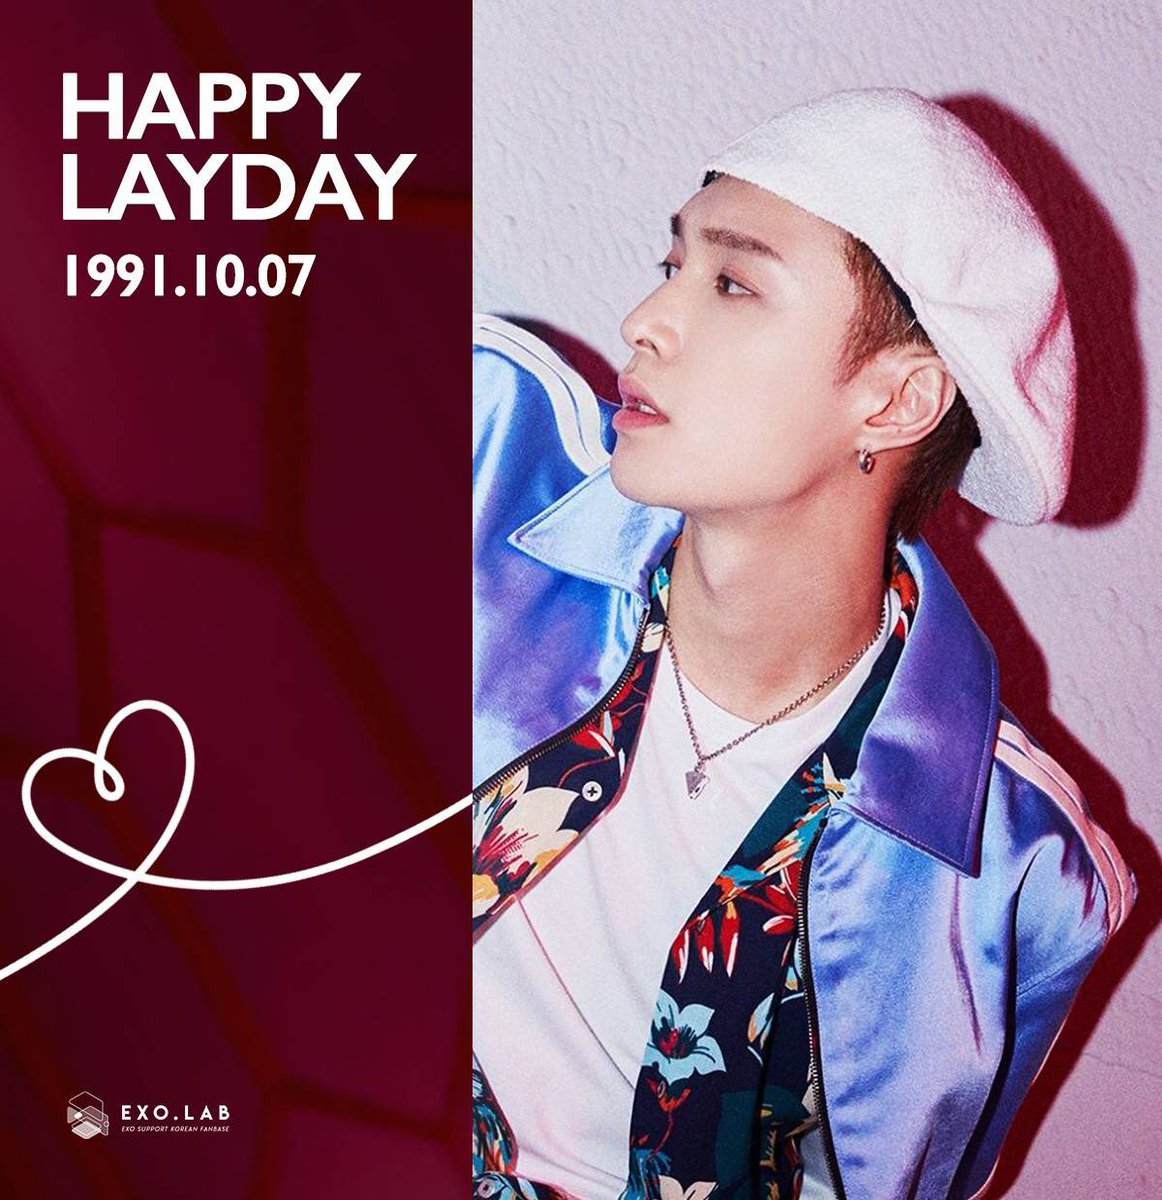 happy birthday beloved exo-l, chinese sheep come back quickly with other exo members .. we miss you so much .. I love you 3000@weareoneEXO @layzhang @B_hundred_Hyun   #HoneyLayDay #LayDay #ZhangYixingDay pic.twitter.com/YpdsorNazJ